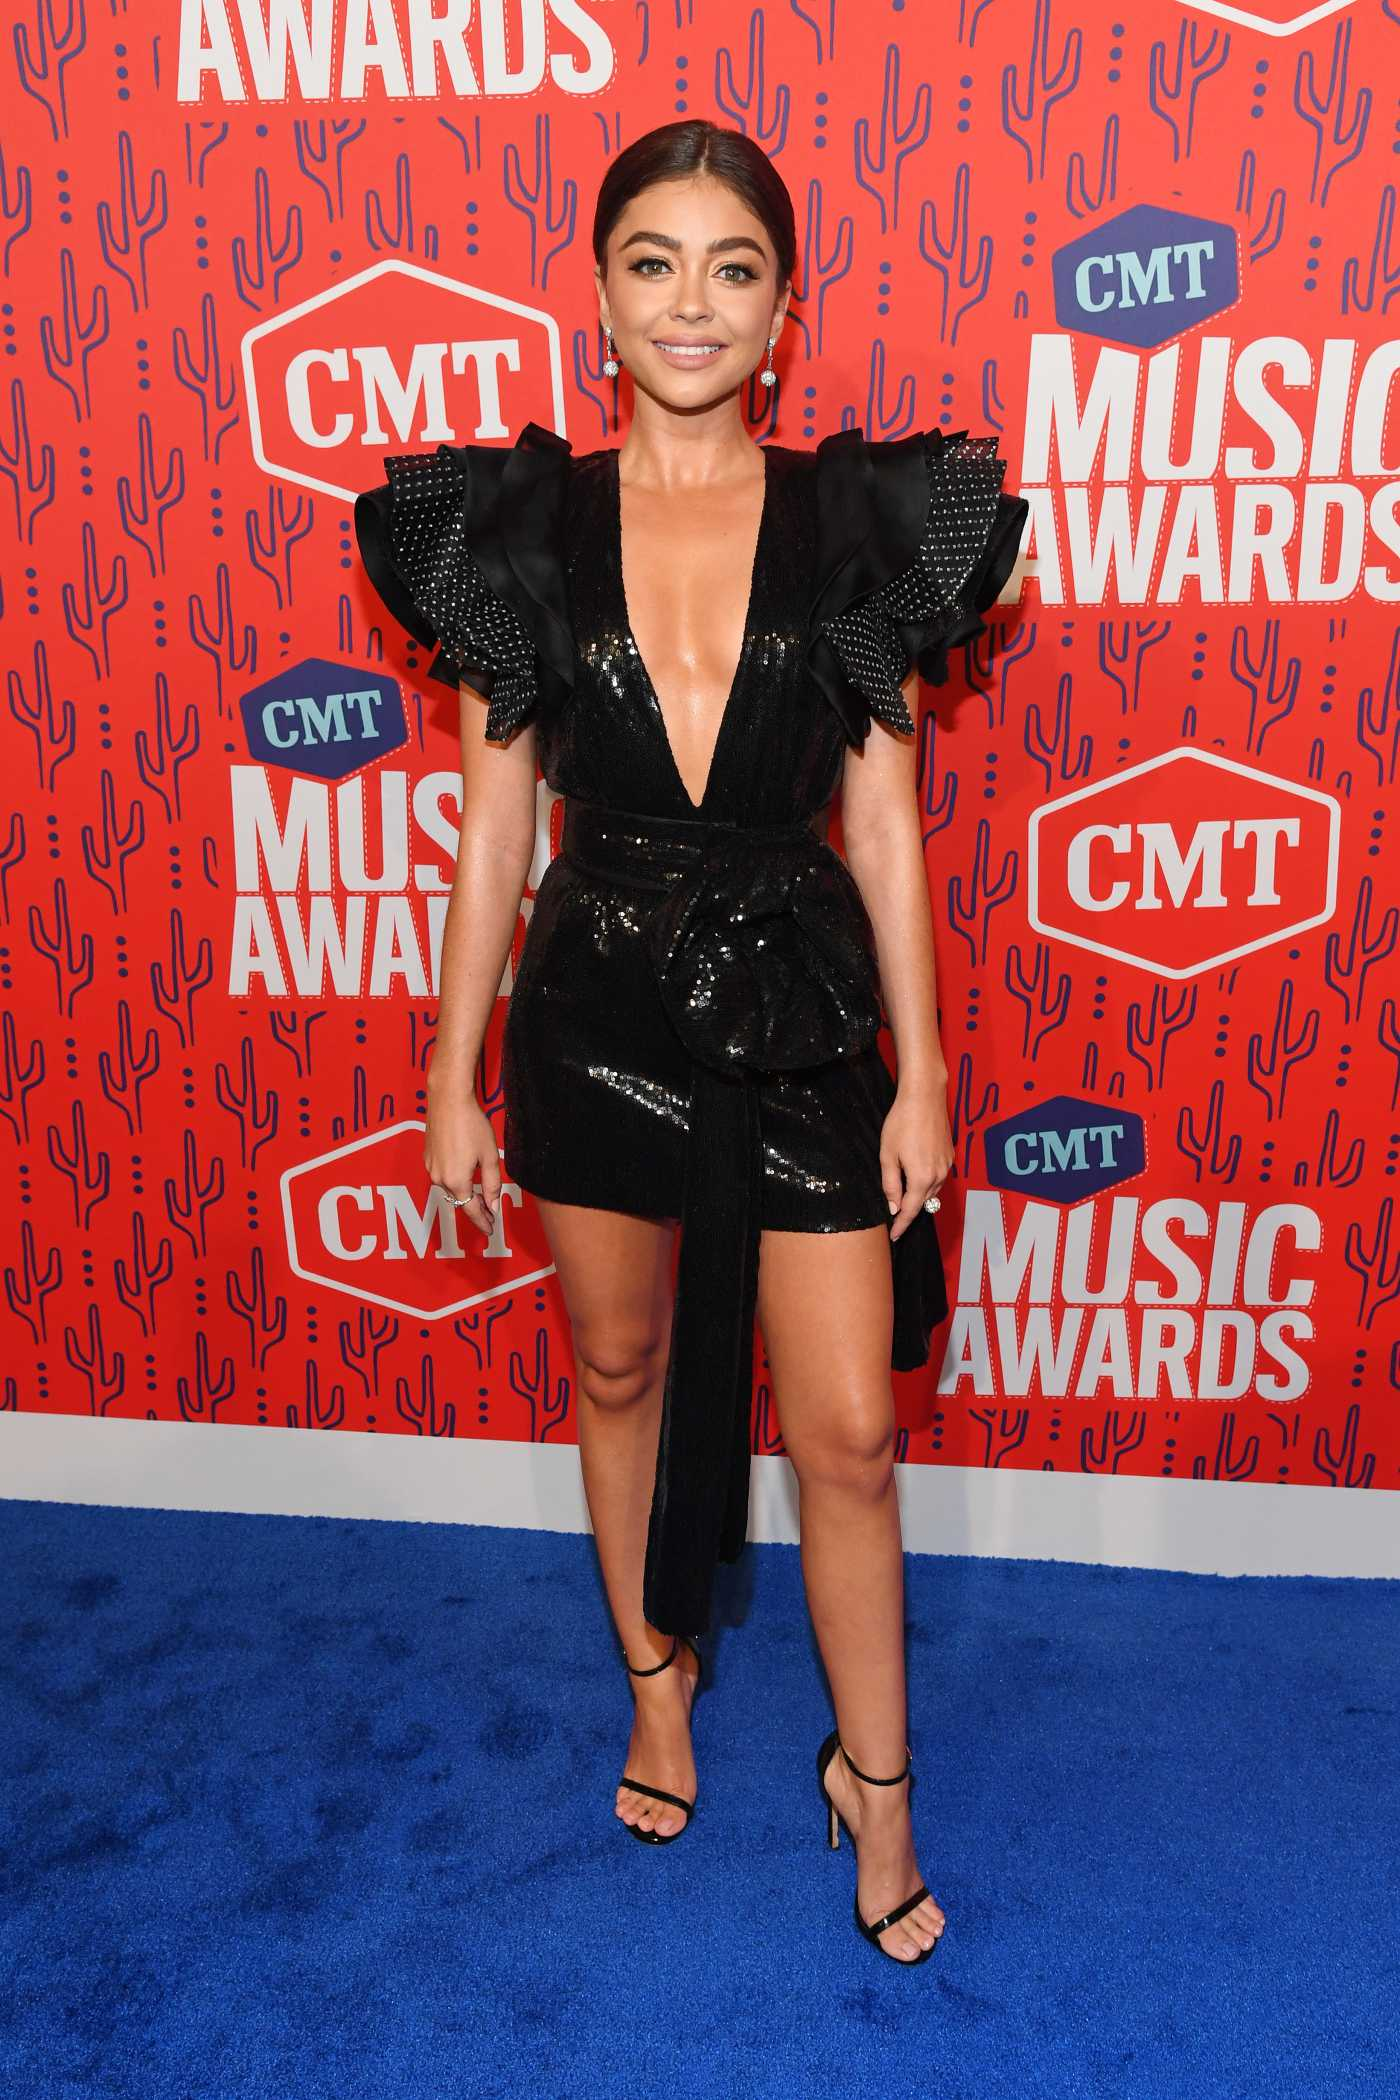 Sarah Hyland Attends 2019 CMT Music Awards at Bridgestone Arena in Nashville 06/05/2019